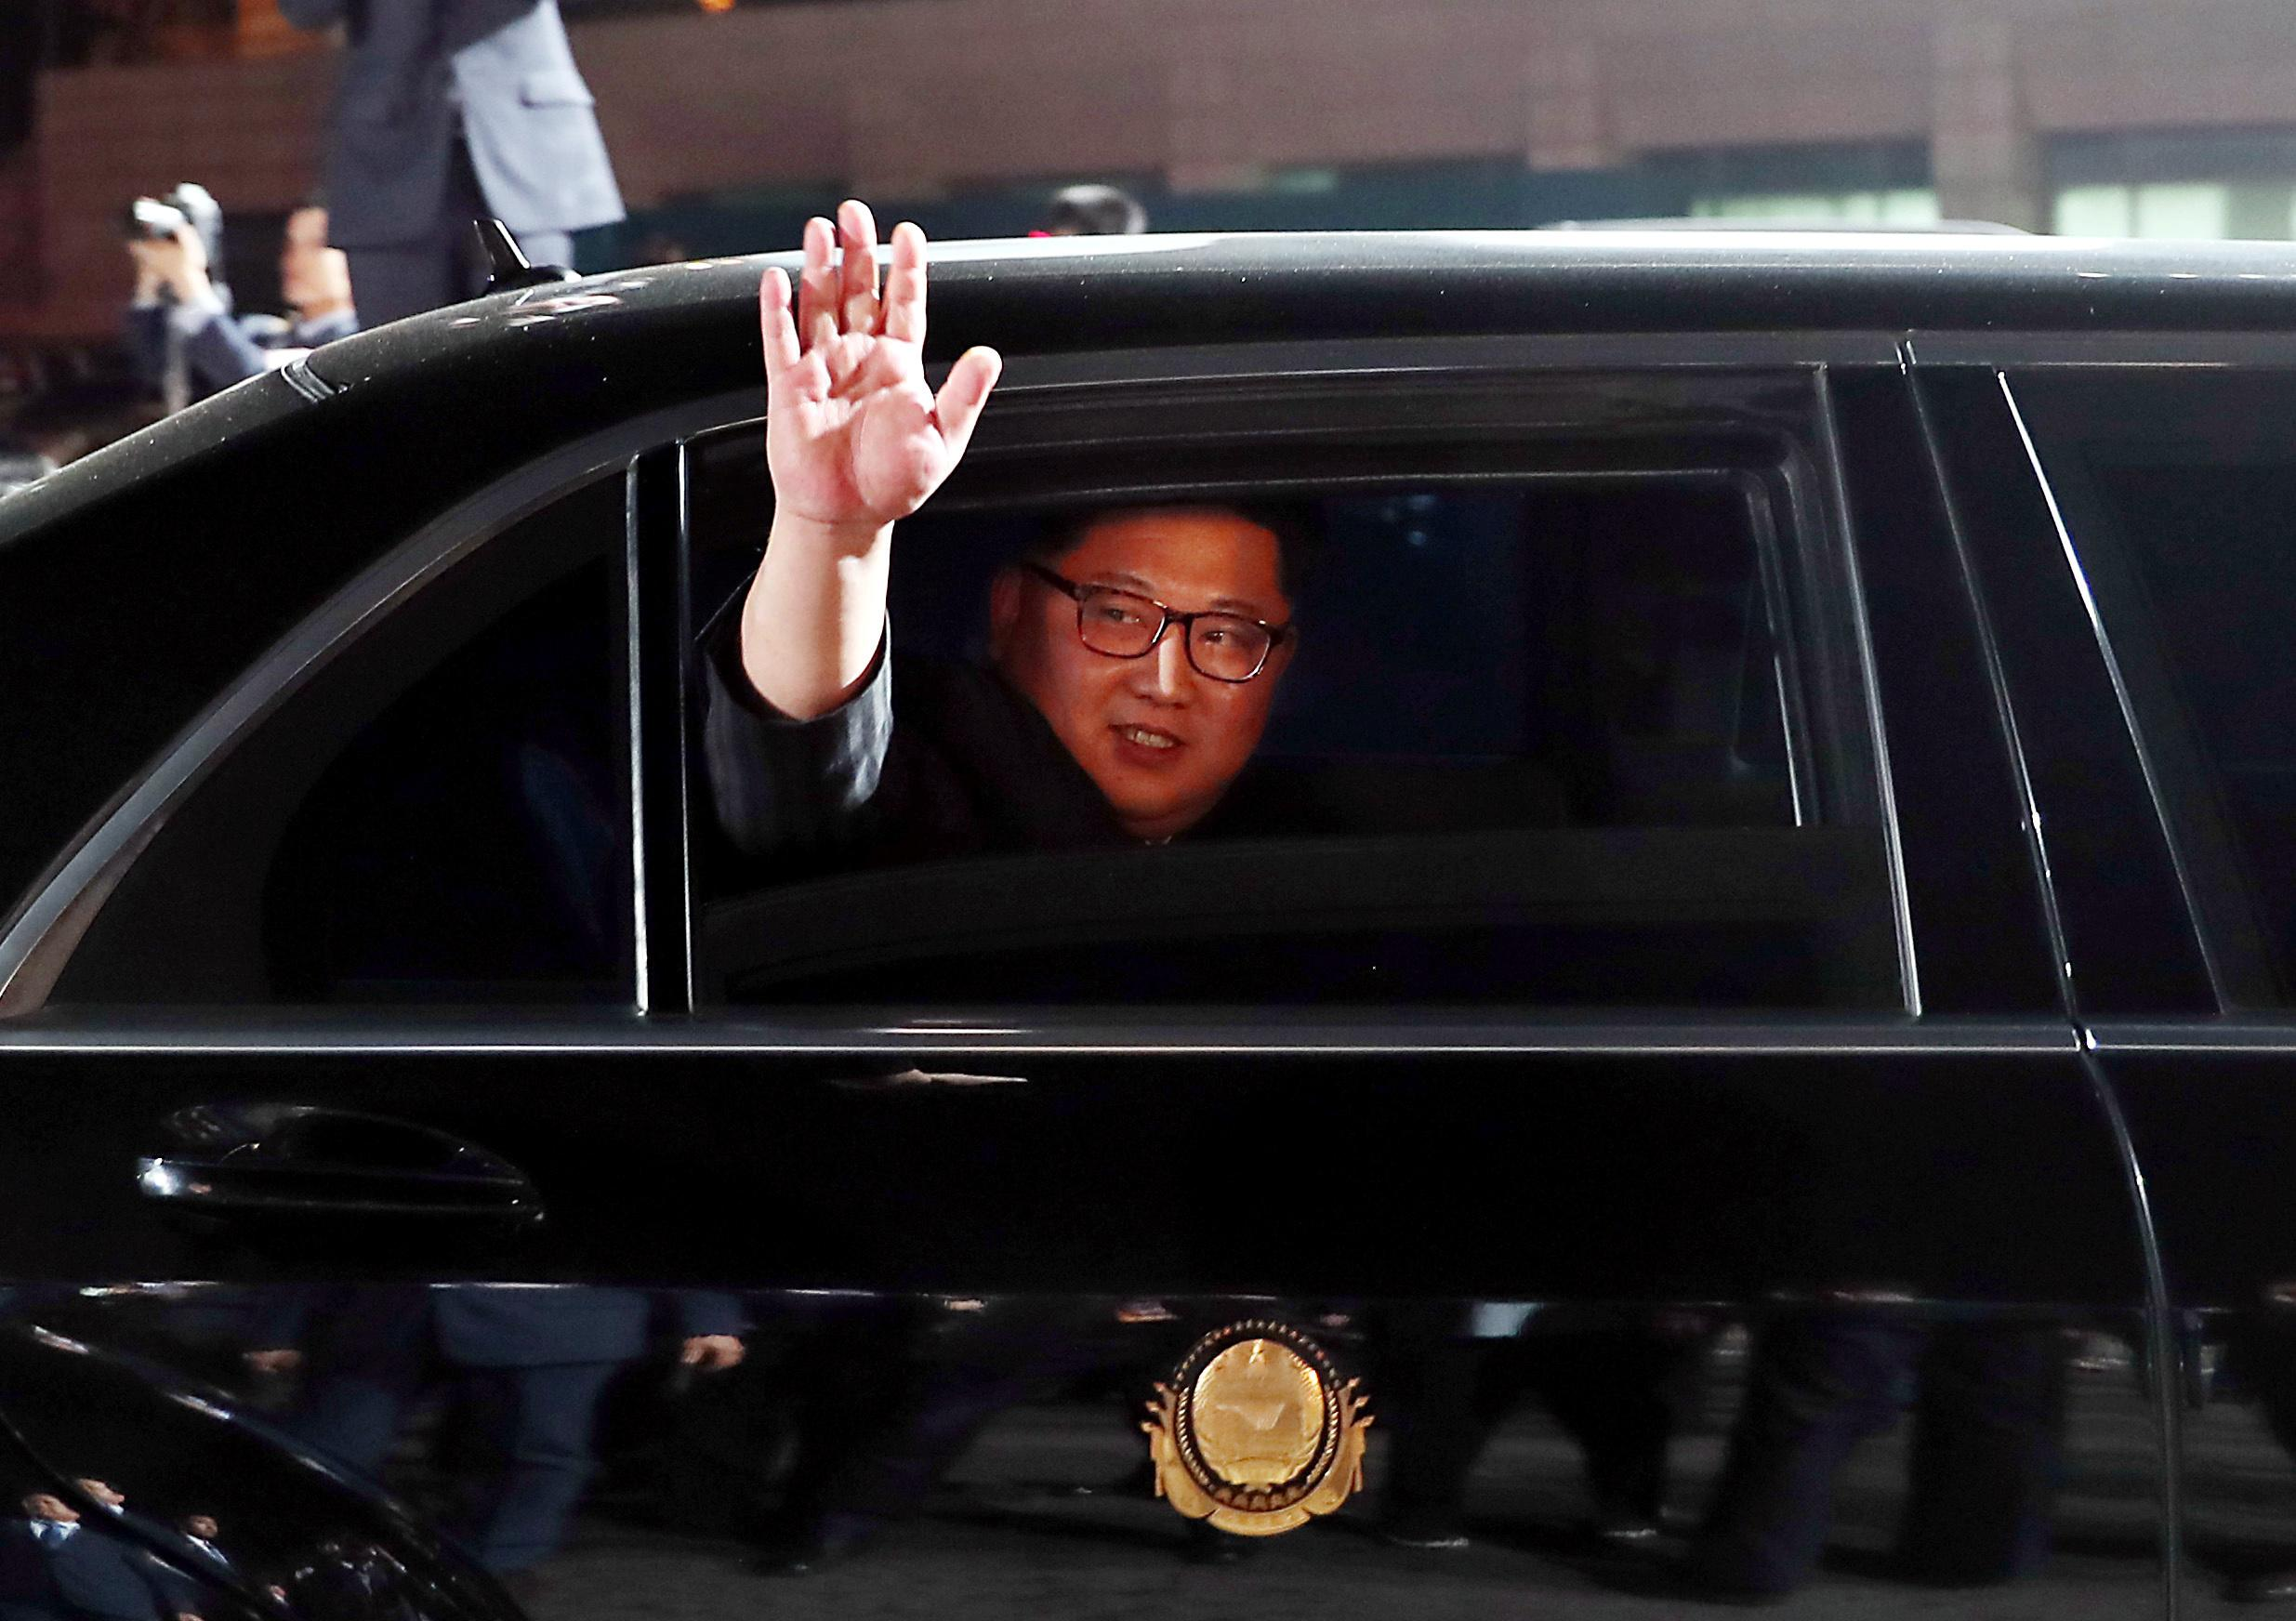 <p>North Korean leader Kim Jong Un (inside a vehicle) bids farewell to South Korean President Moon Jae-in as he leaves after a farewell ceremony at the truce village of Panmunjom inside the demilitarized zone separating the two Koreas, South Korea, April 27, 2018. (Photo: Korea Summit Press Pool/Pool via Reuters) </p>